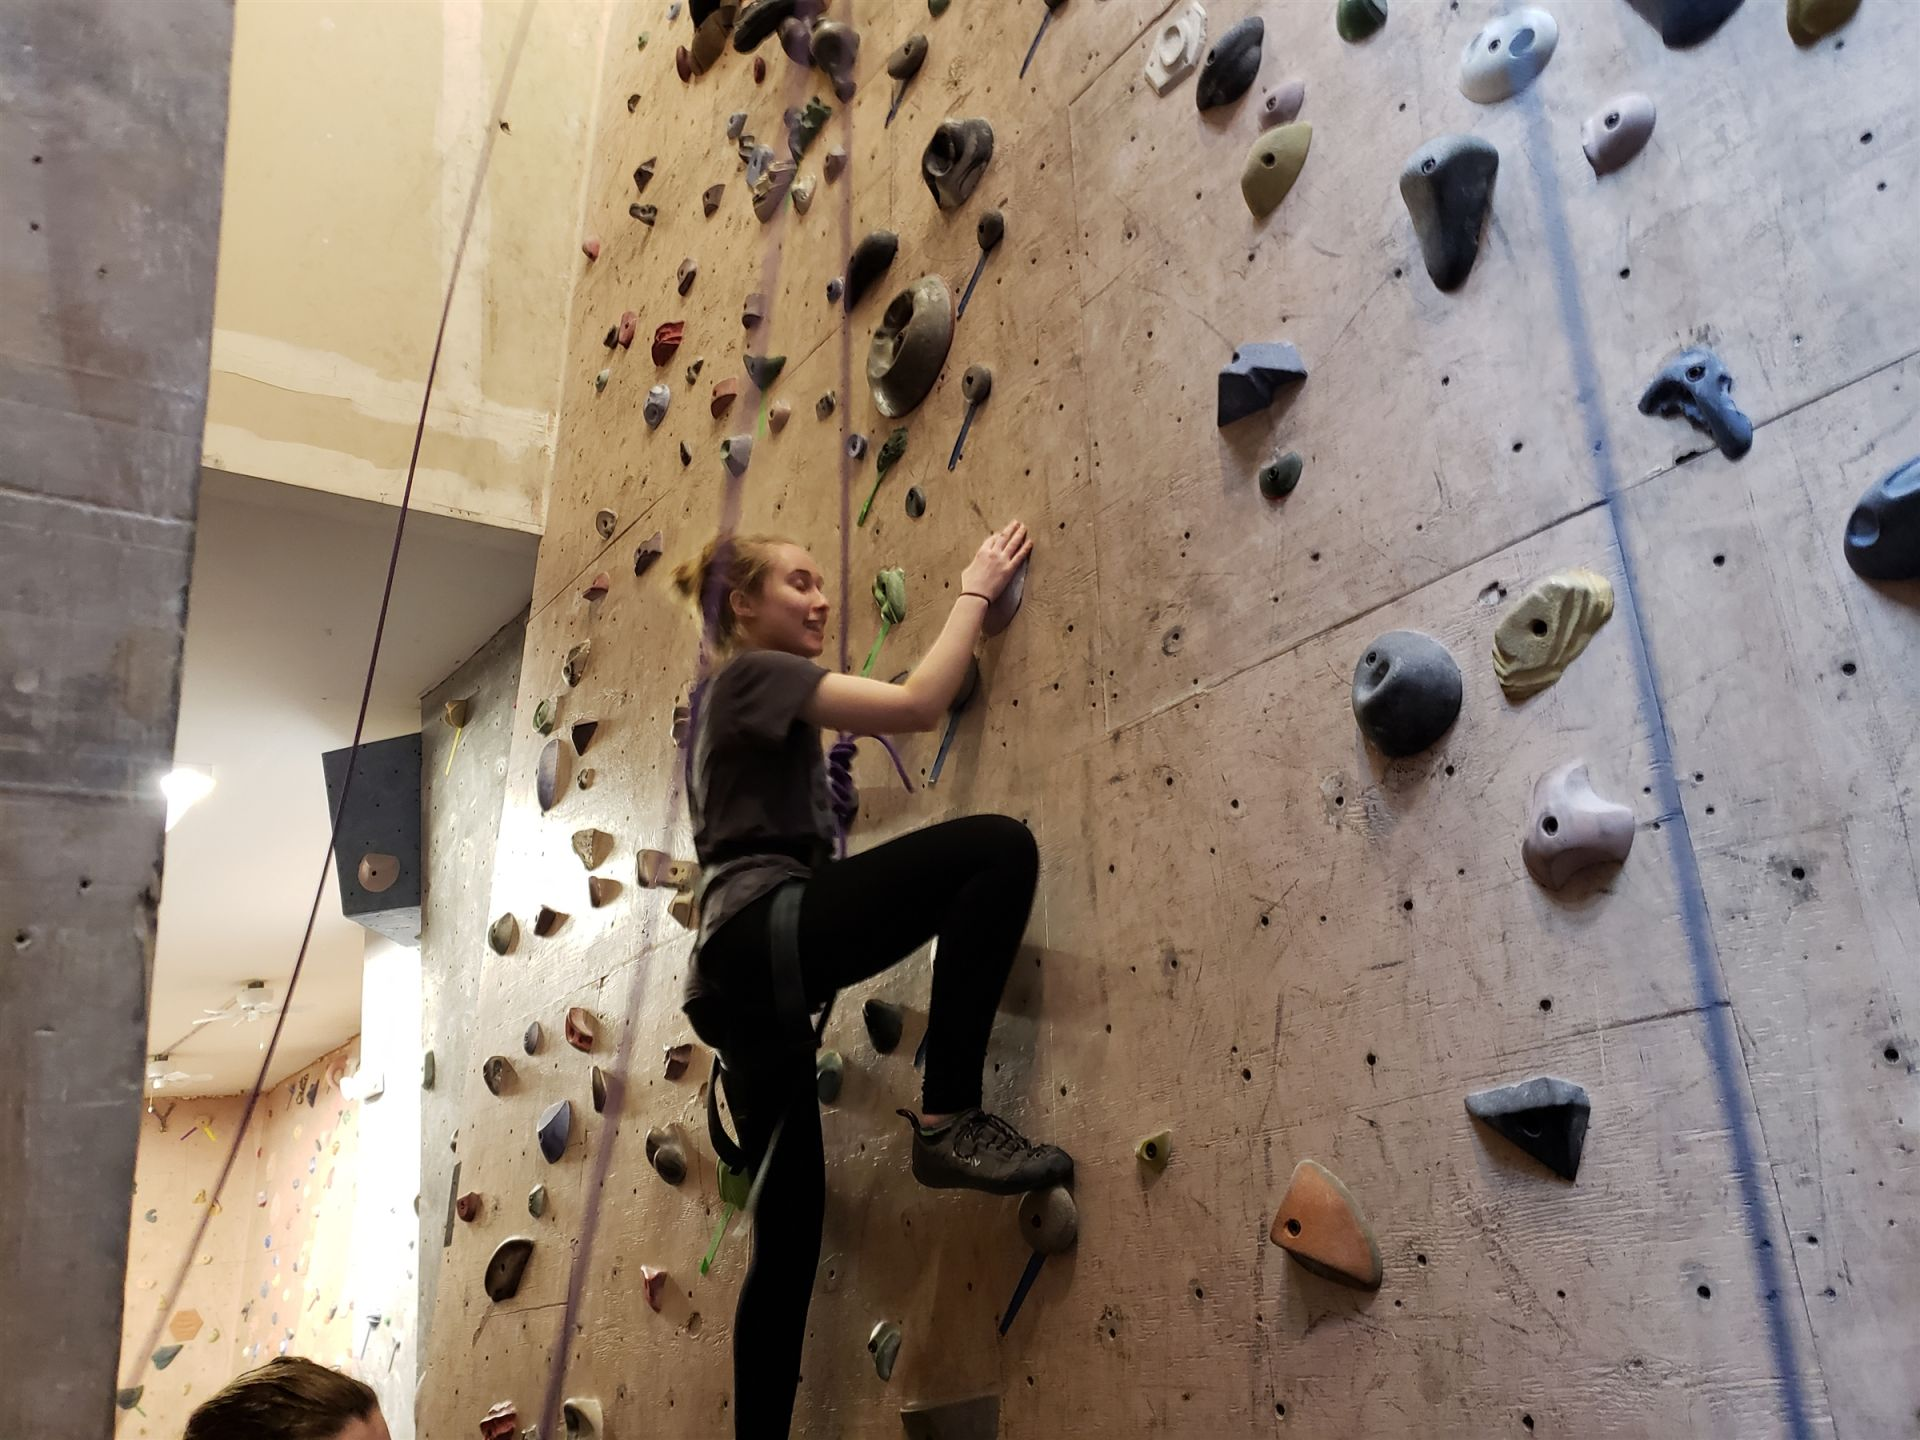 Excursion club members scaled the walls at Milton Rock Gym.